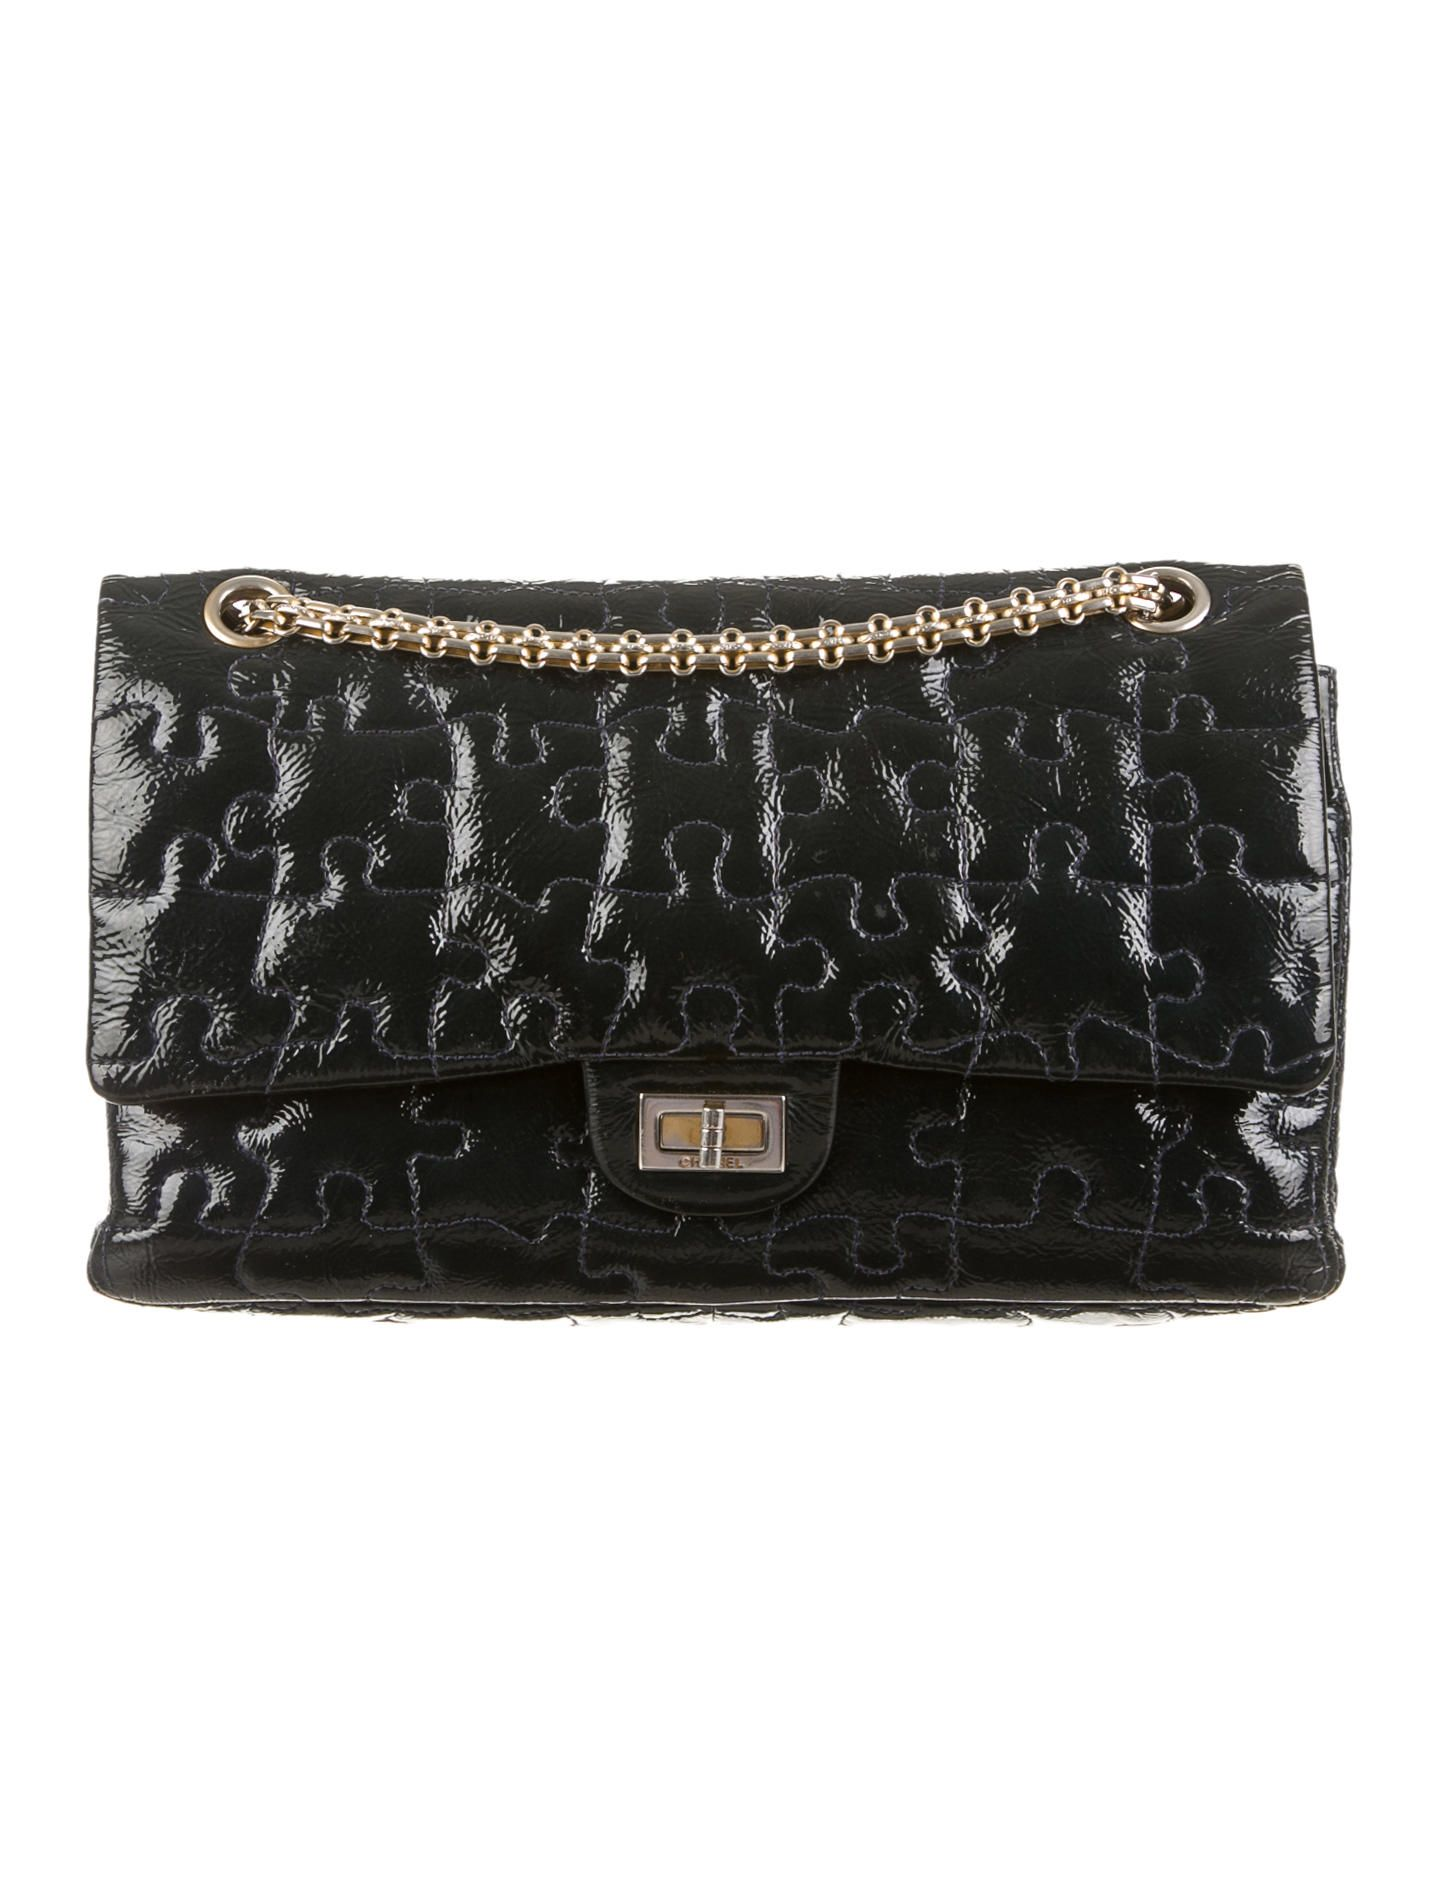 509789a02058 Evergreen patent leather Chanel Reissue 226 Puzzle Flap bag with gold-tone  hardware, Venetian